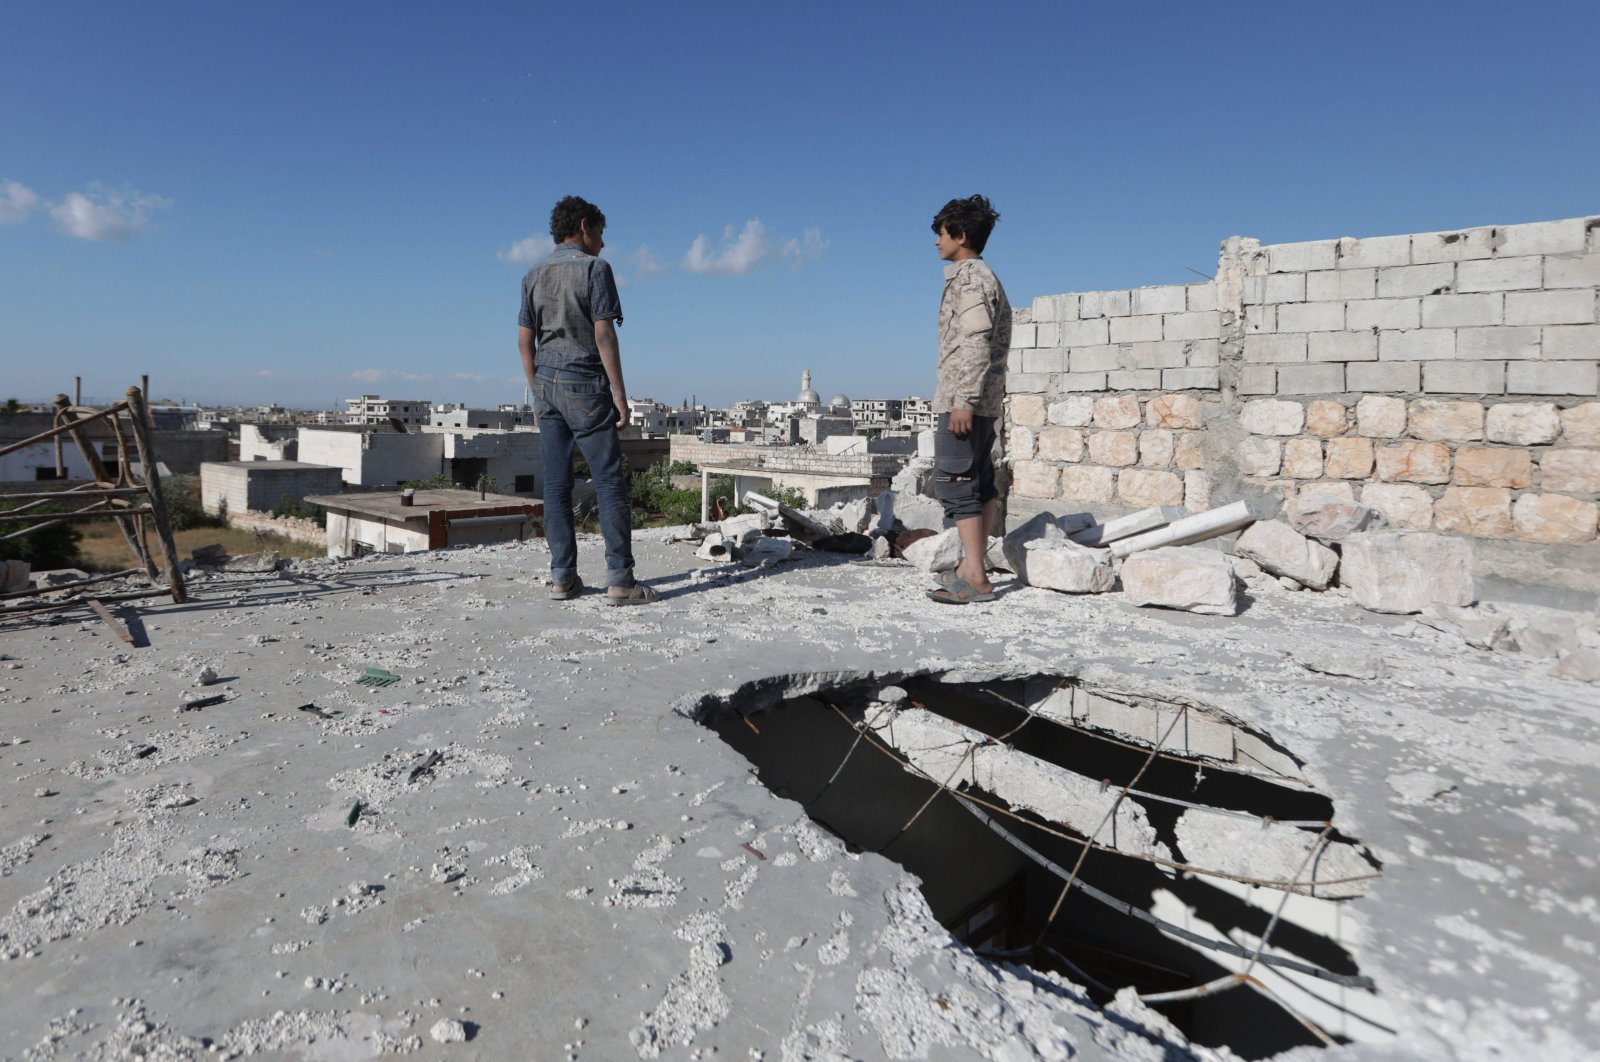 Syrian youths stand on May 6, 2020 on the damaged roof of a building in al-Nayrab, a town ravaged by pro-Assad forces' bombardment near the M4 strategic highway, in Syria's northwestern Idlib province (AFP Photo)